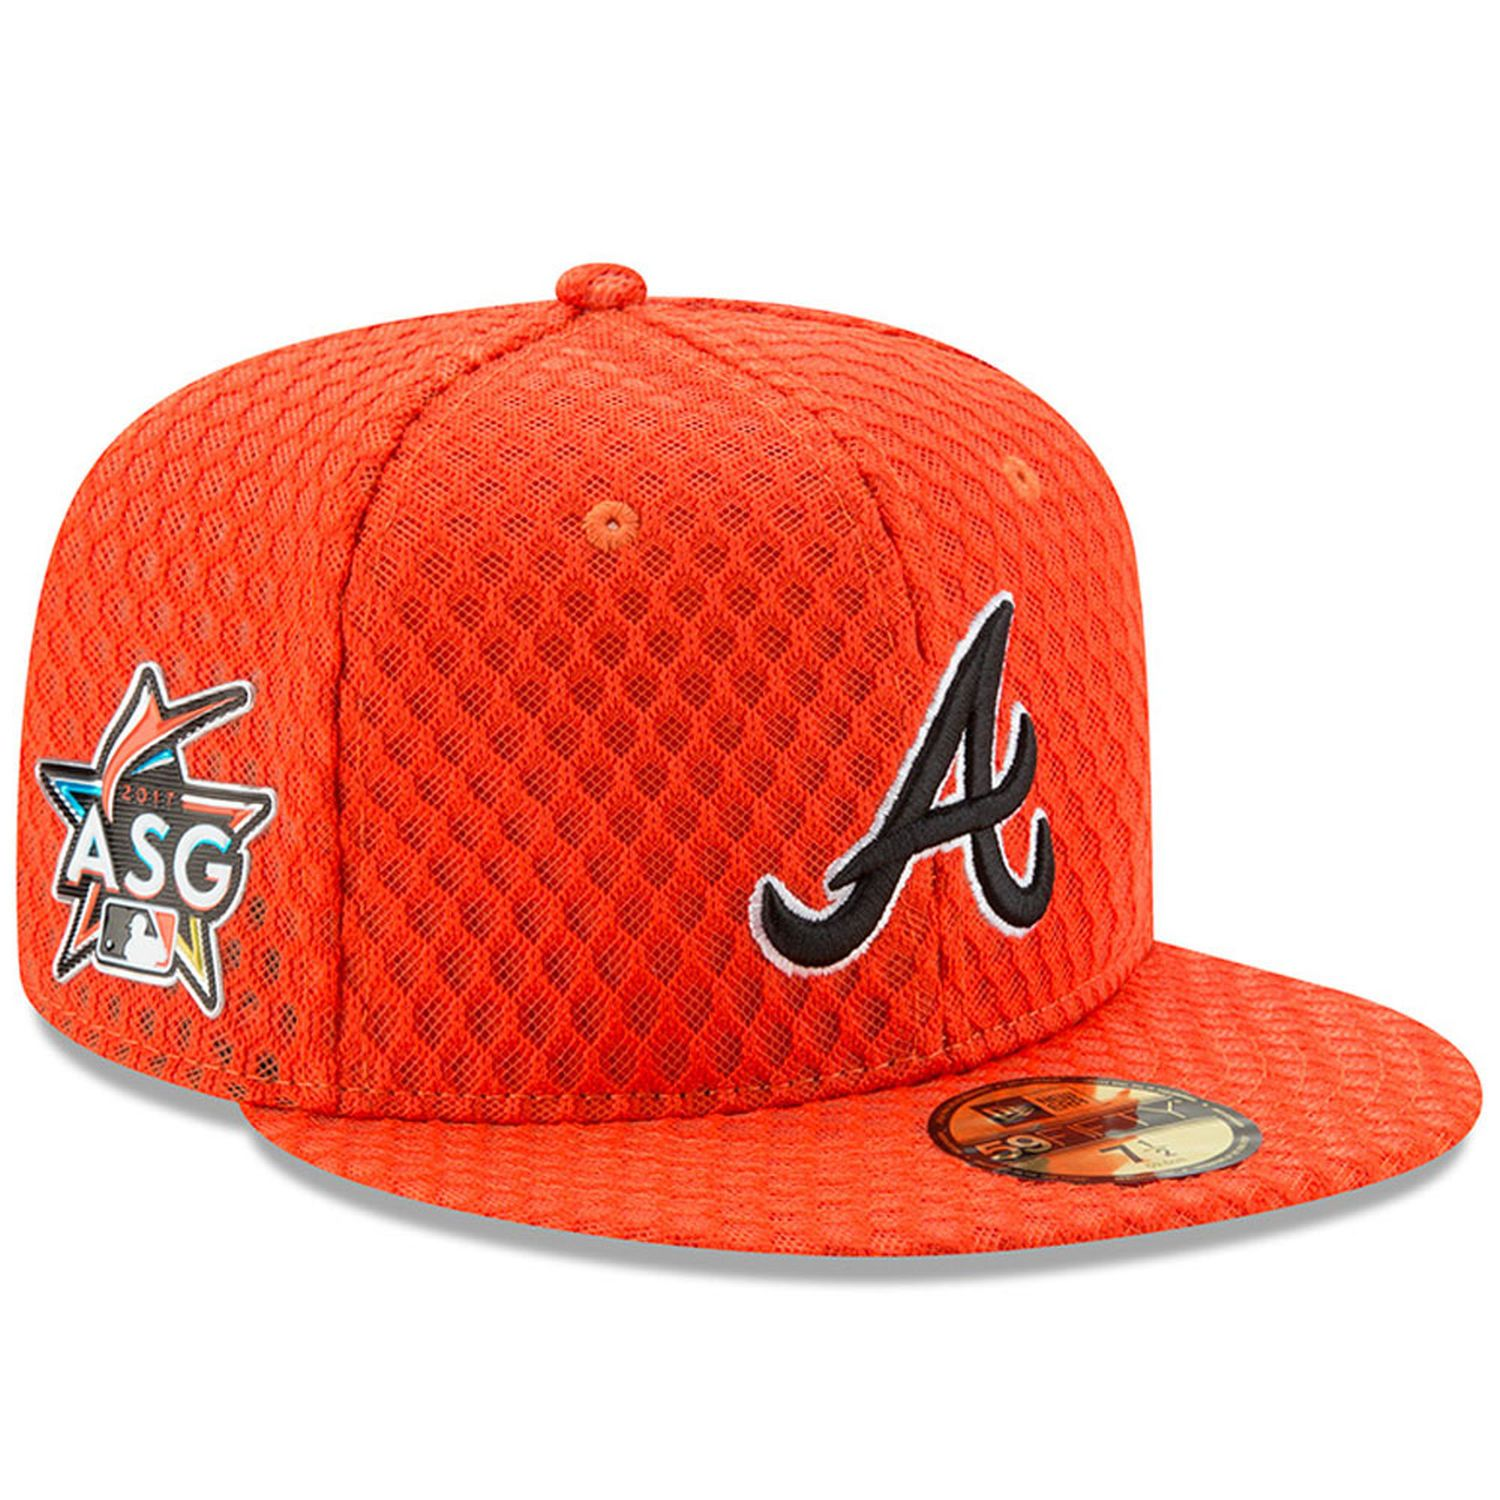 Men S Atlanta Braves New Era Orange 2017 Home Run Derby Side Patch 59fifty Fitted Hat Atlanta Braves Fitted Hats Homerun